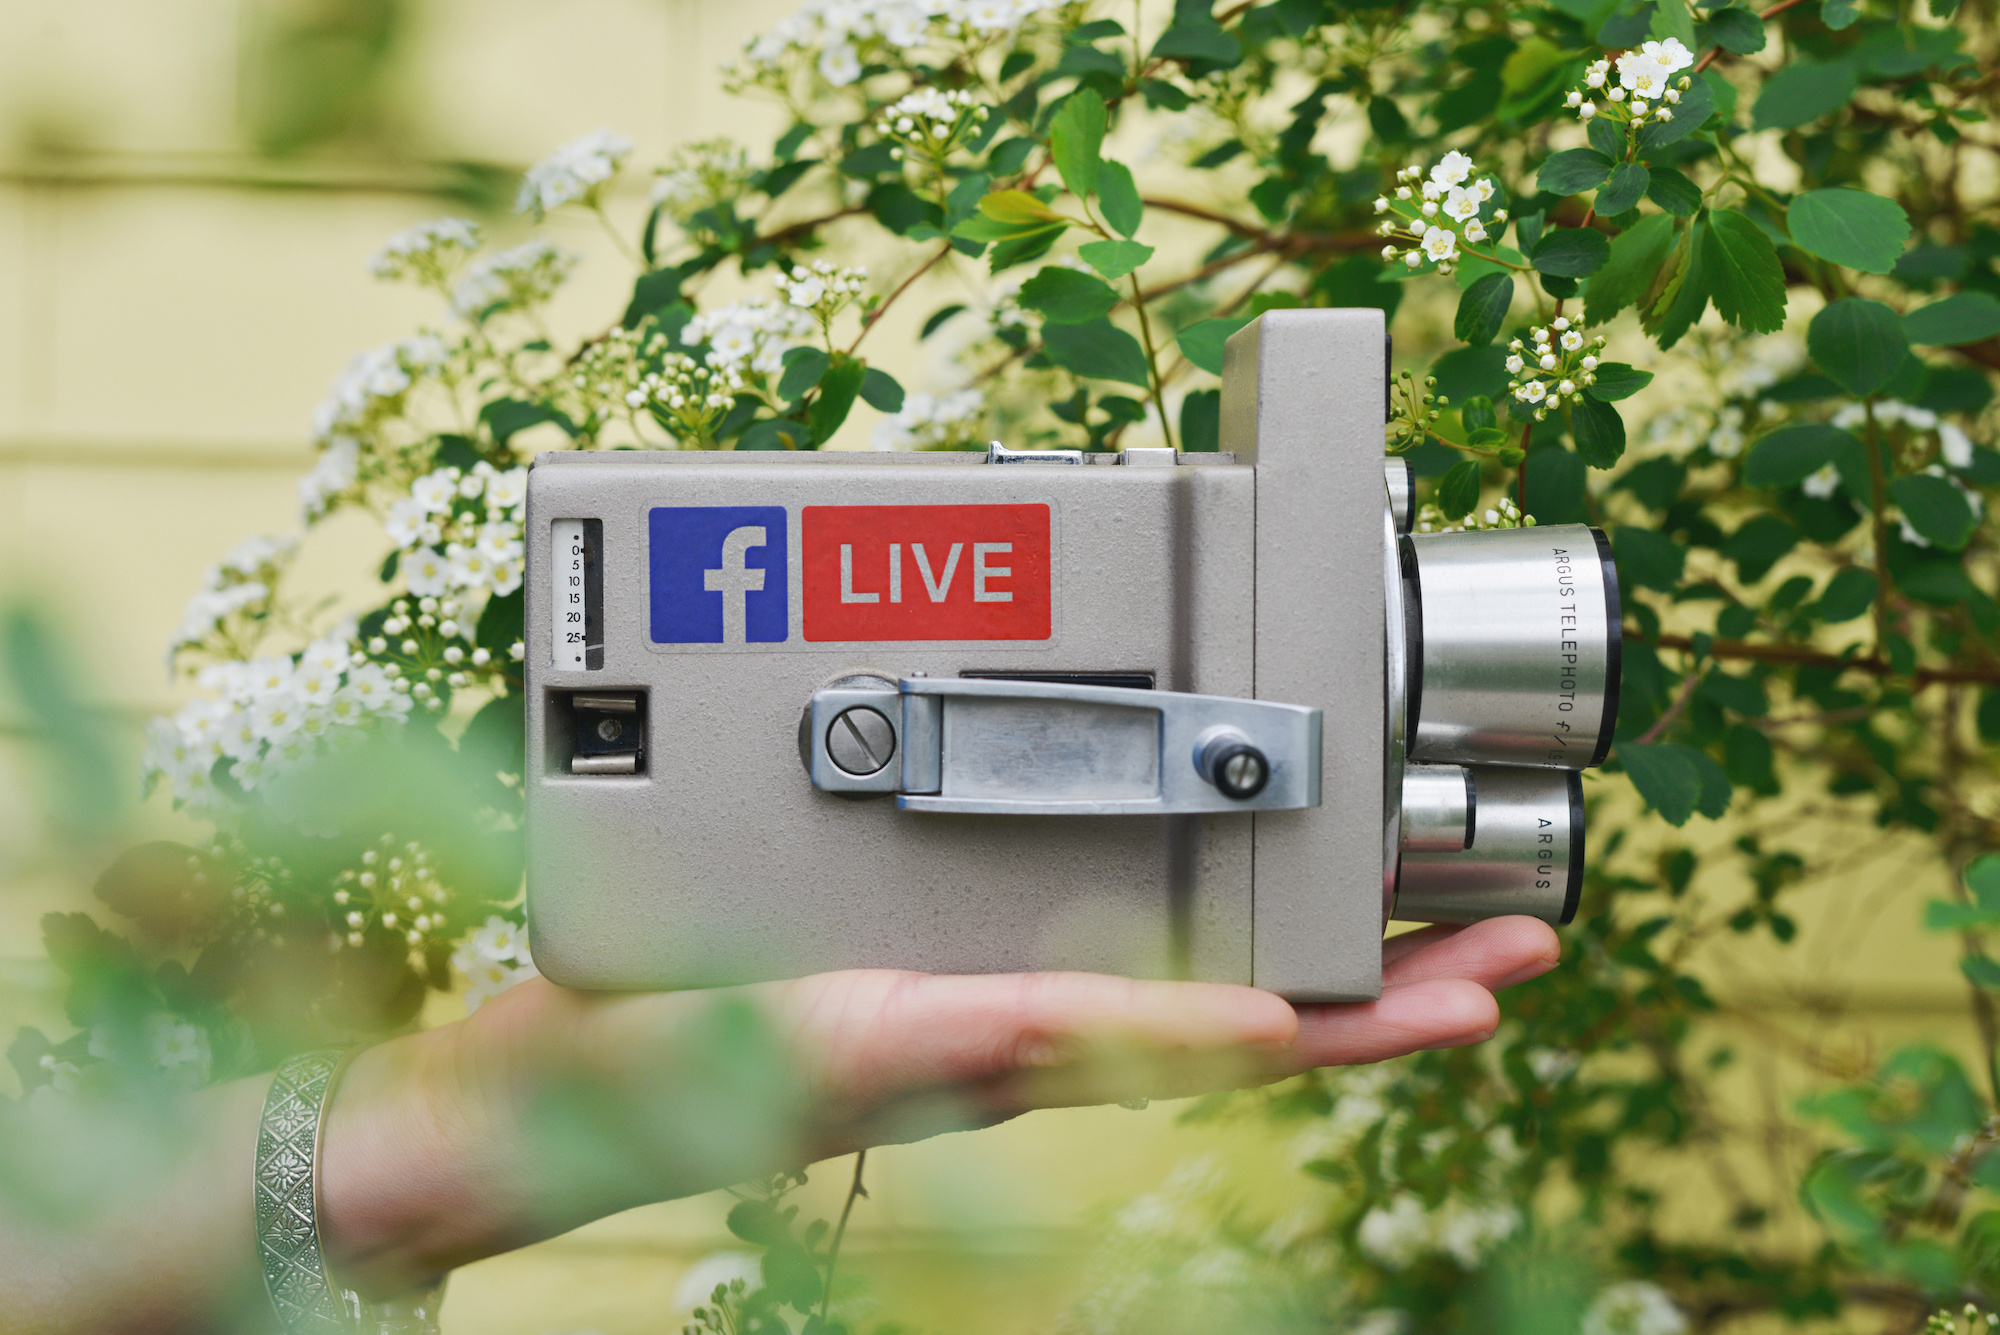 Facebook live topics for small businesses